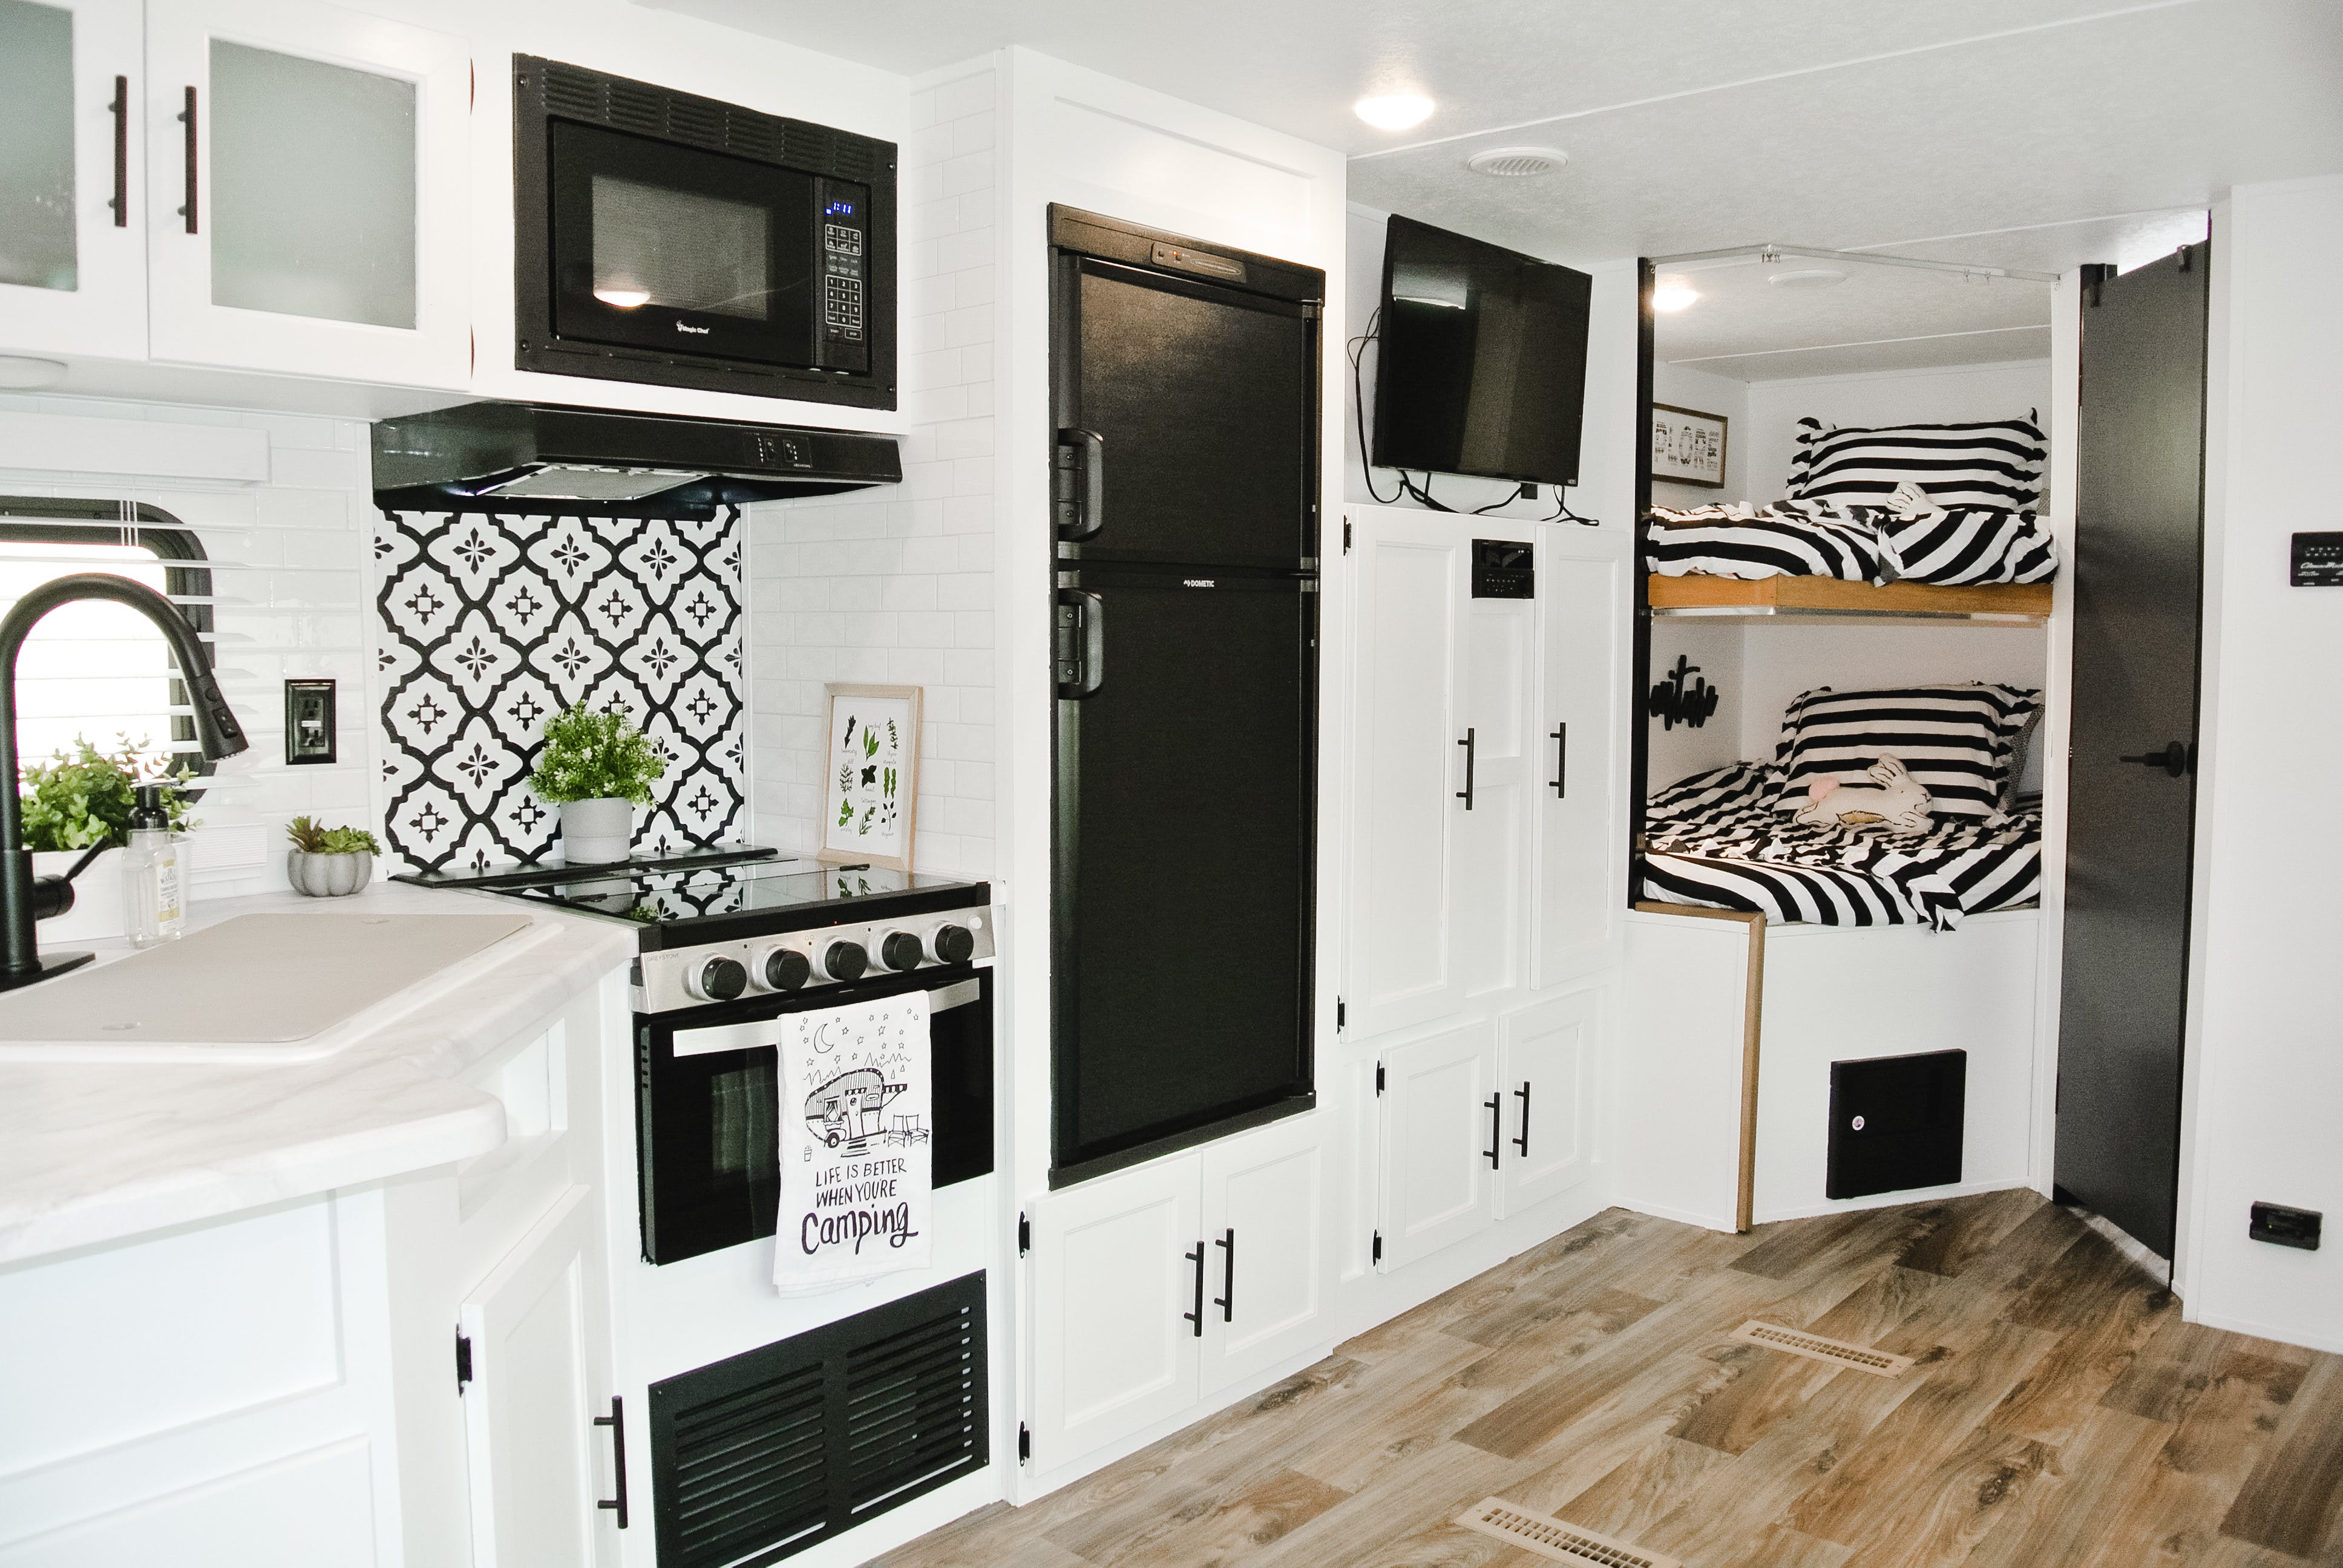 Travel + Leisure: Camping at Disney World is Affordable and Fun - and This RV is an Adorable Way to do it